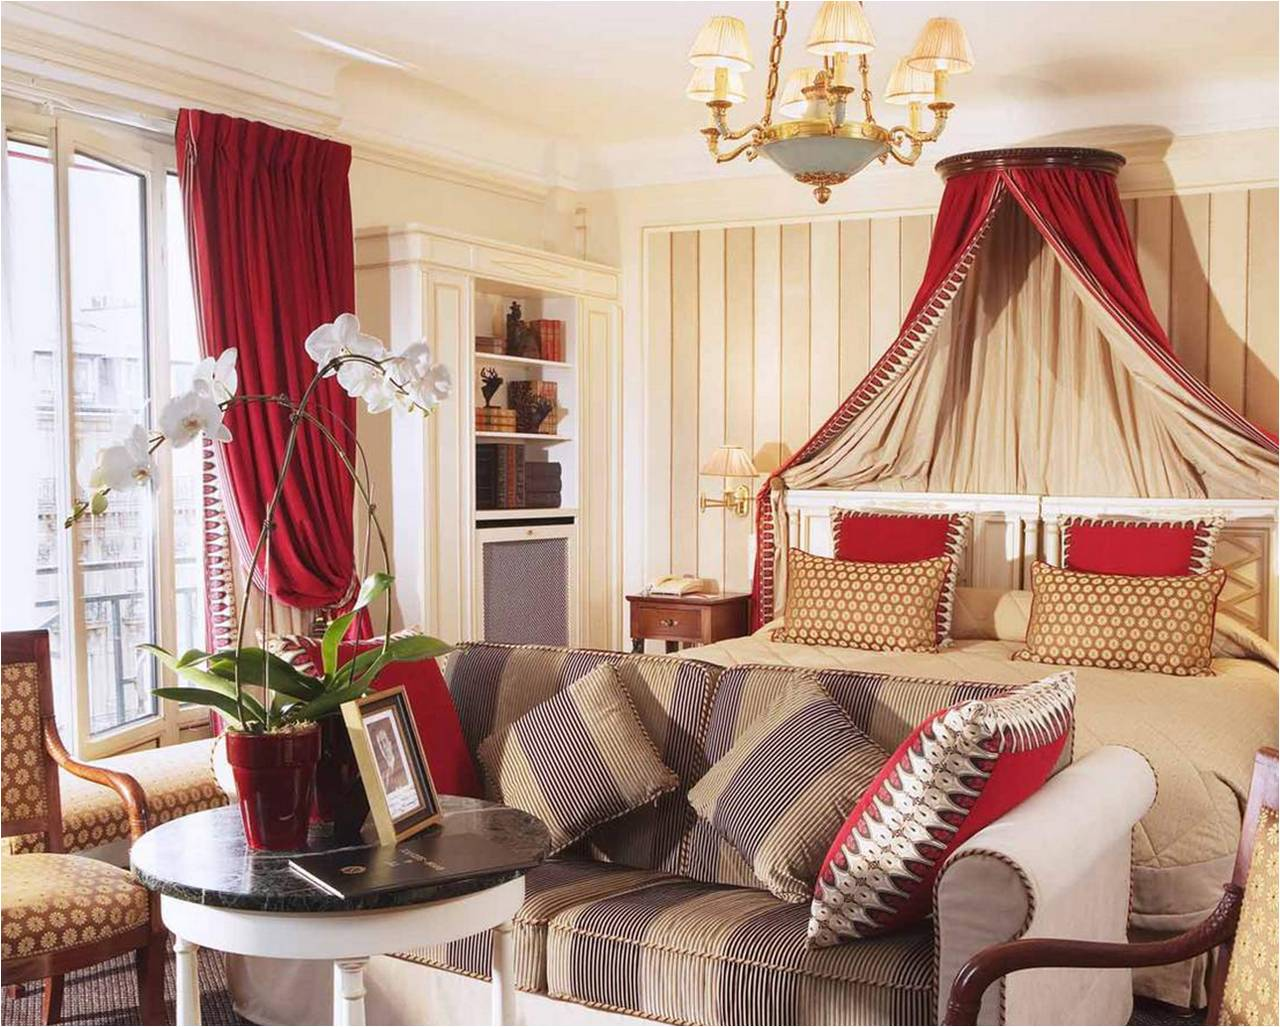 Decorating Room Ideas: Eye For Design: Decorating French Empire Style Bedrooms